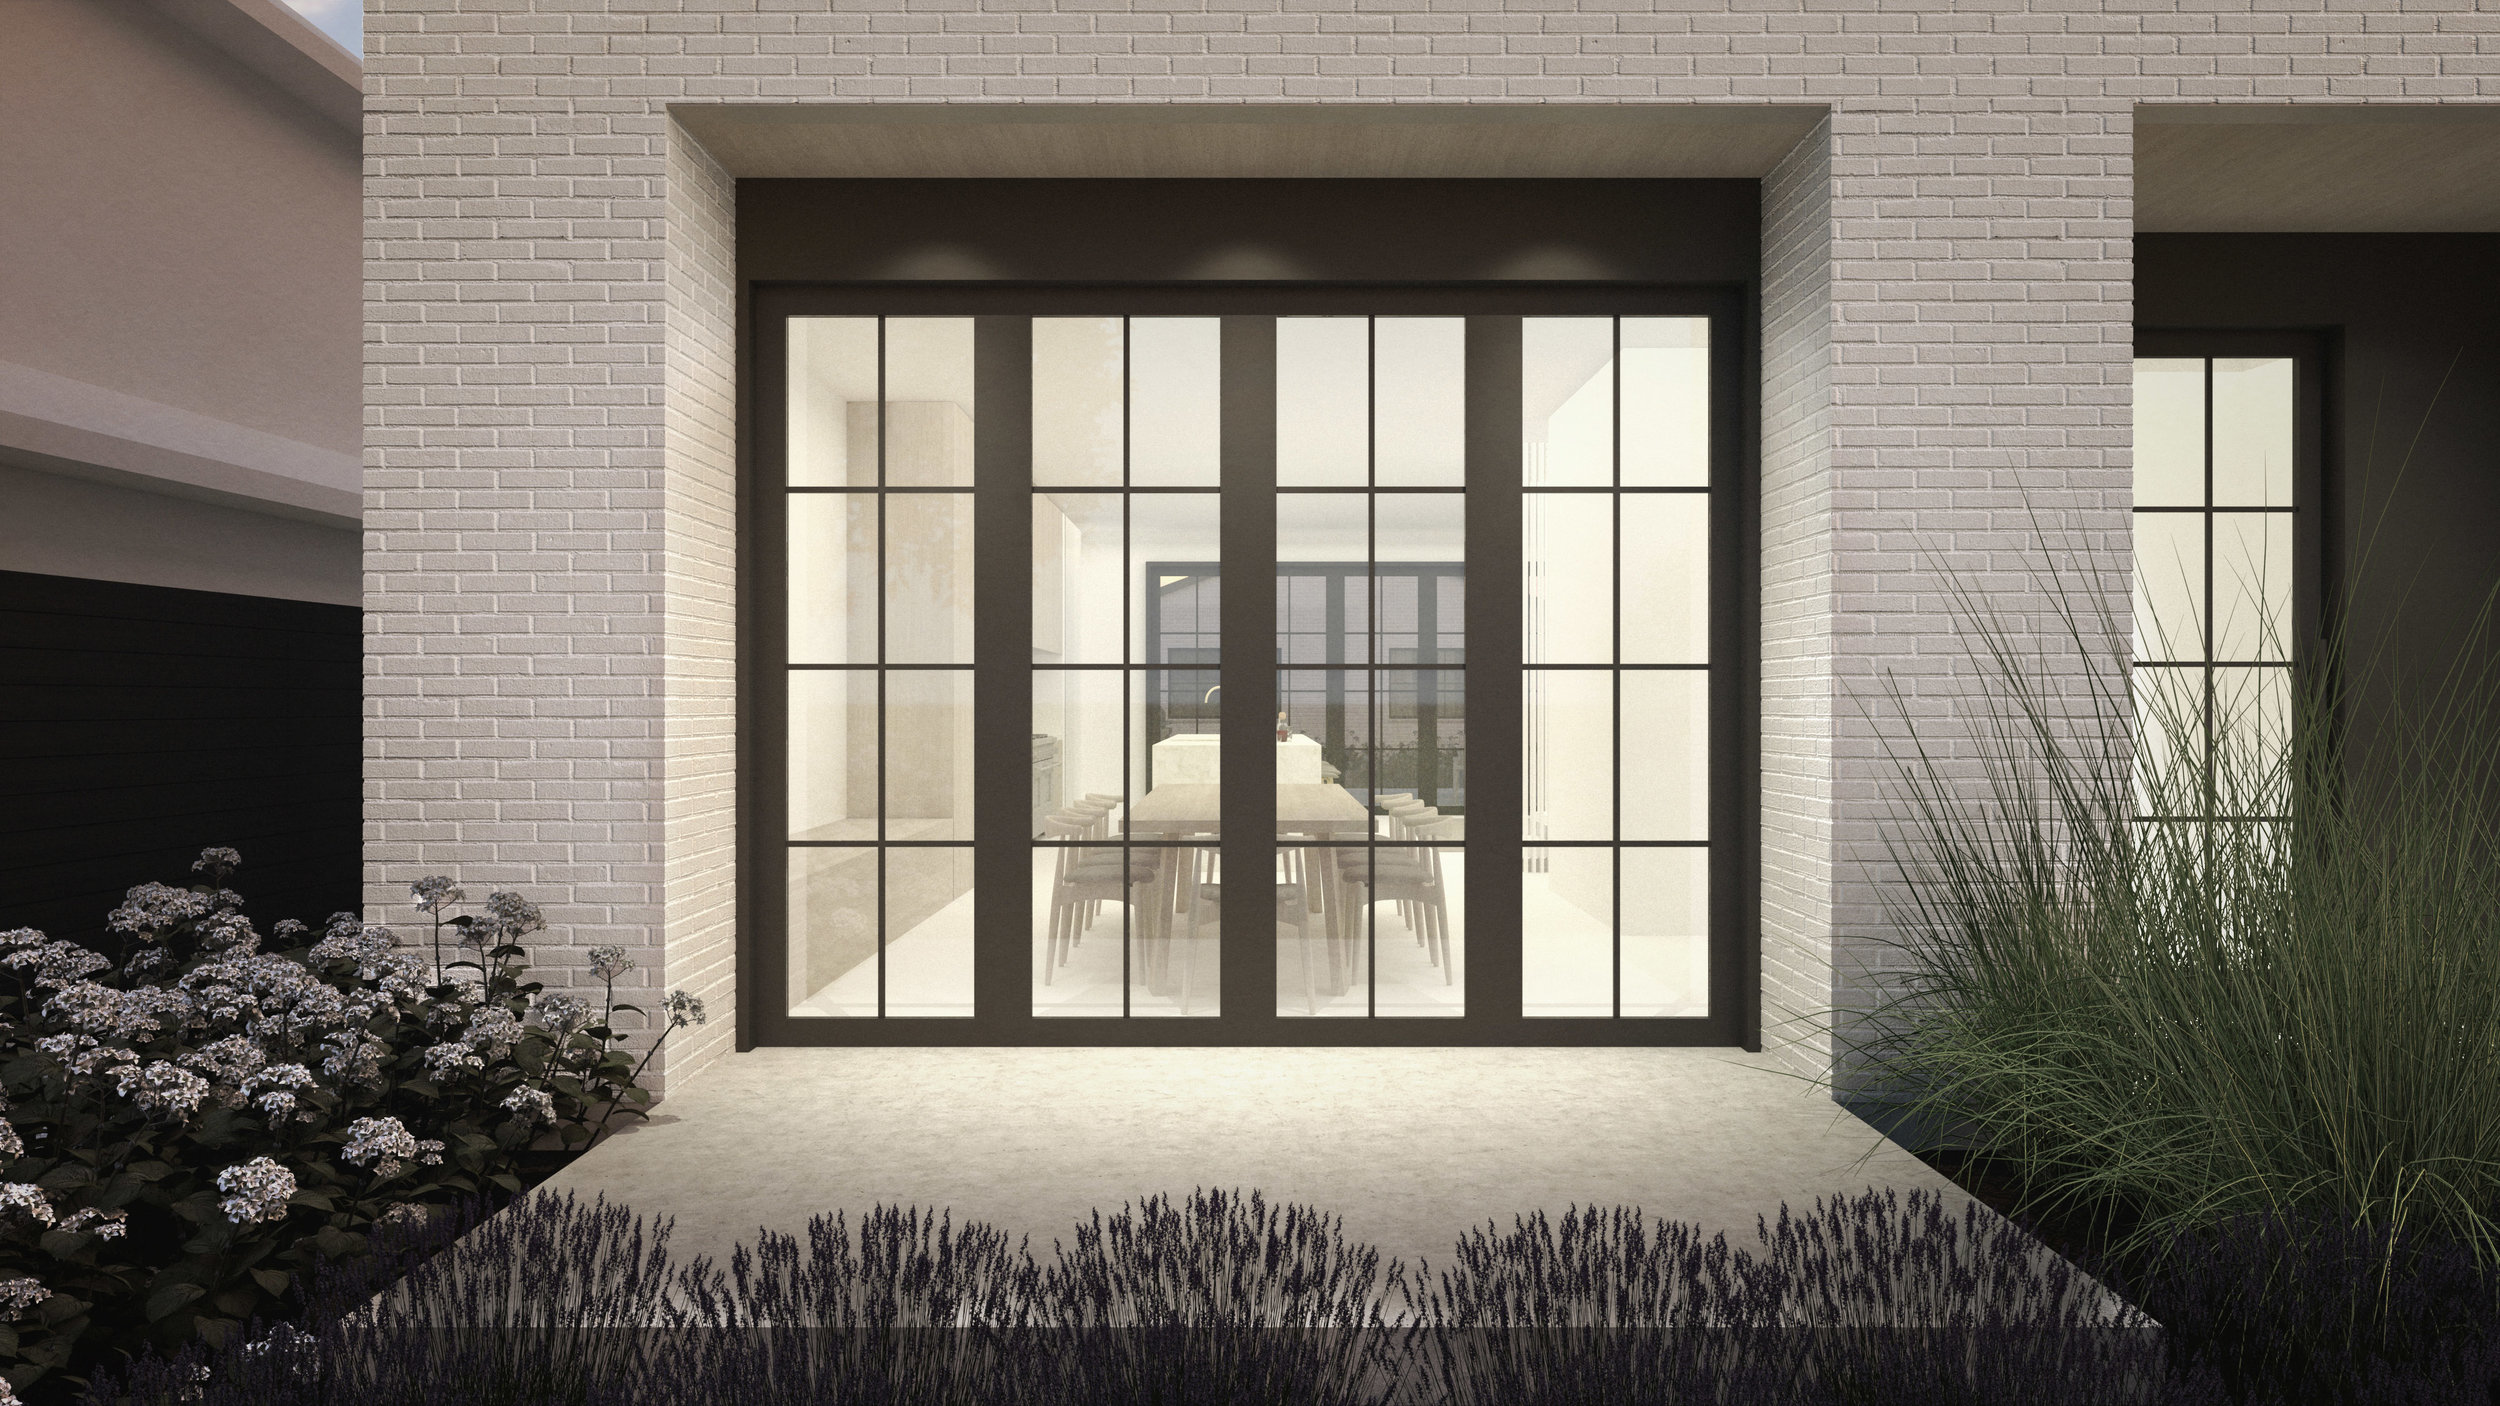 128 Peveril Render 3 sm.jpg